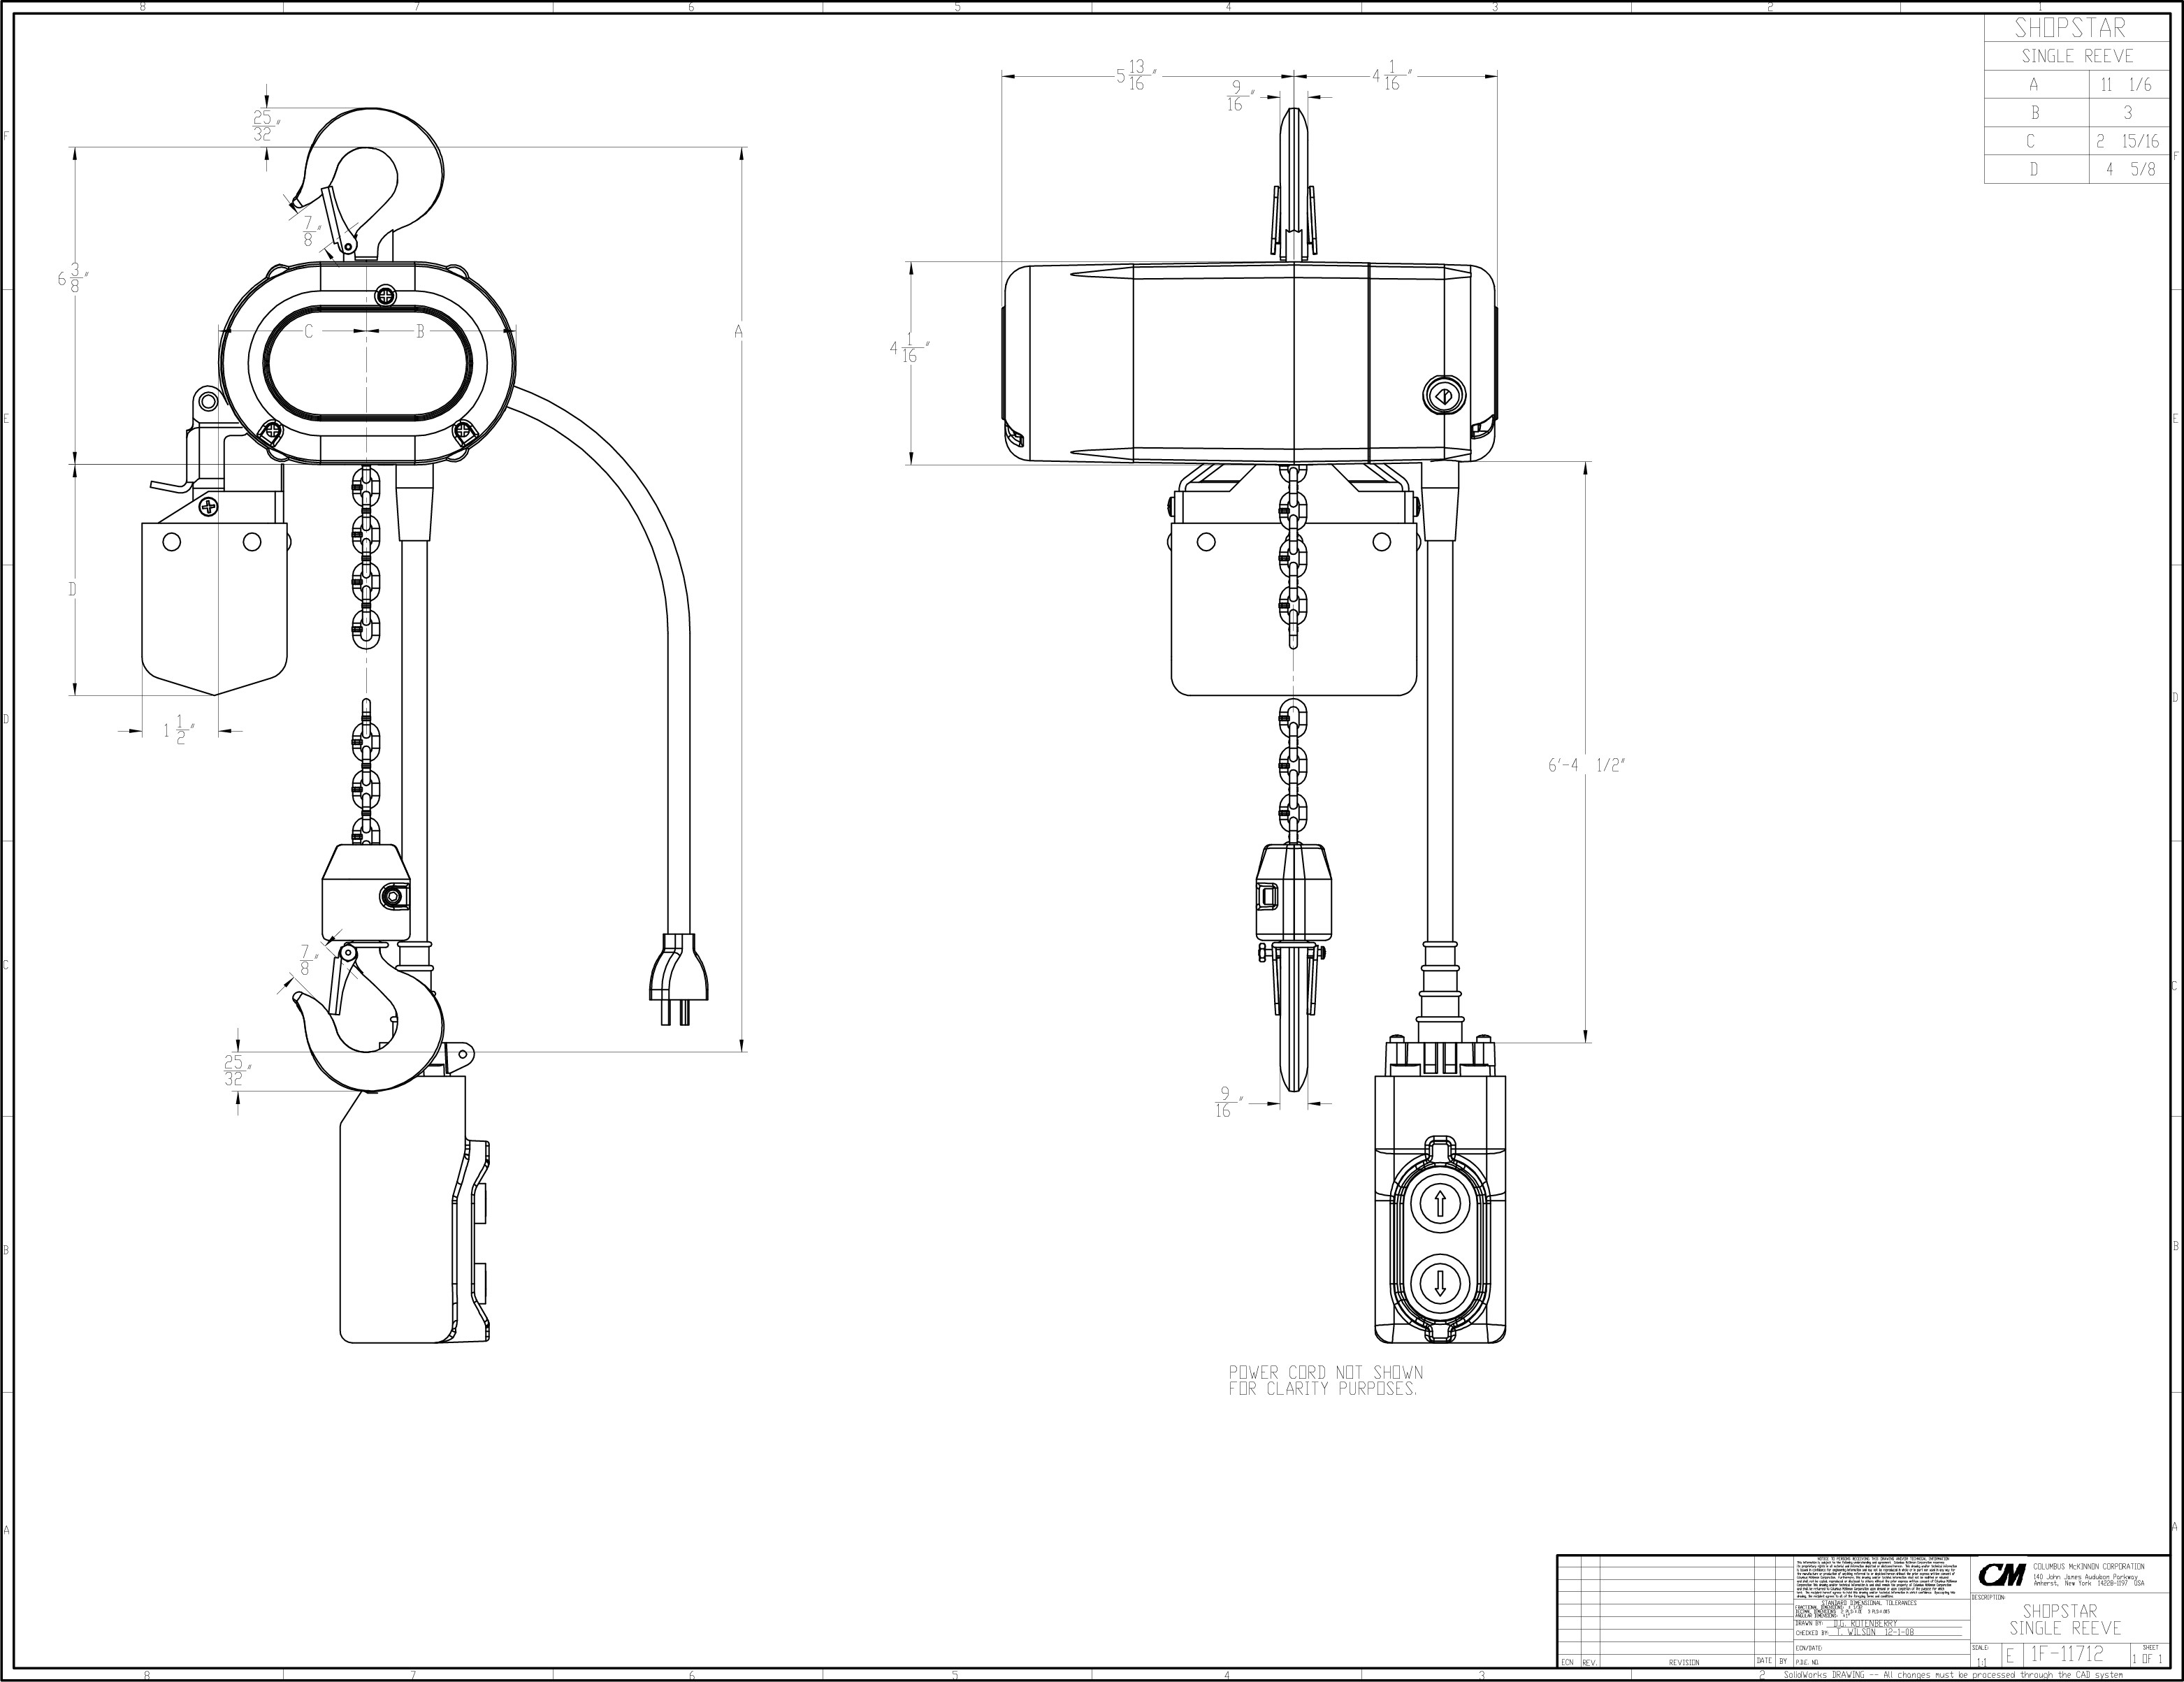 Cm Shopstar Hoist Wiring Diagram